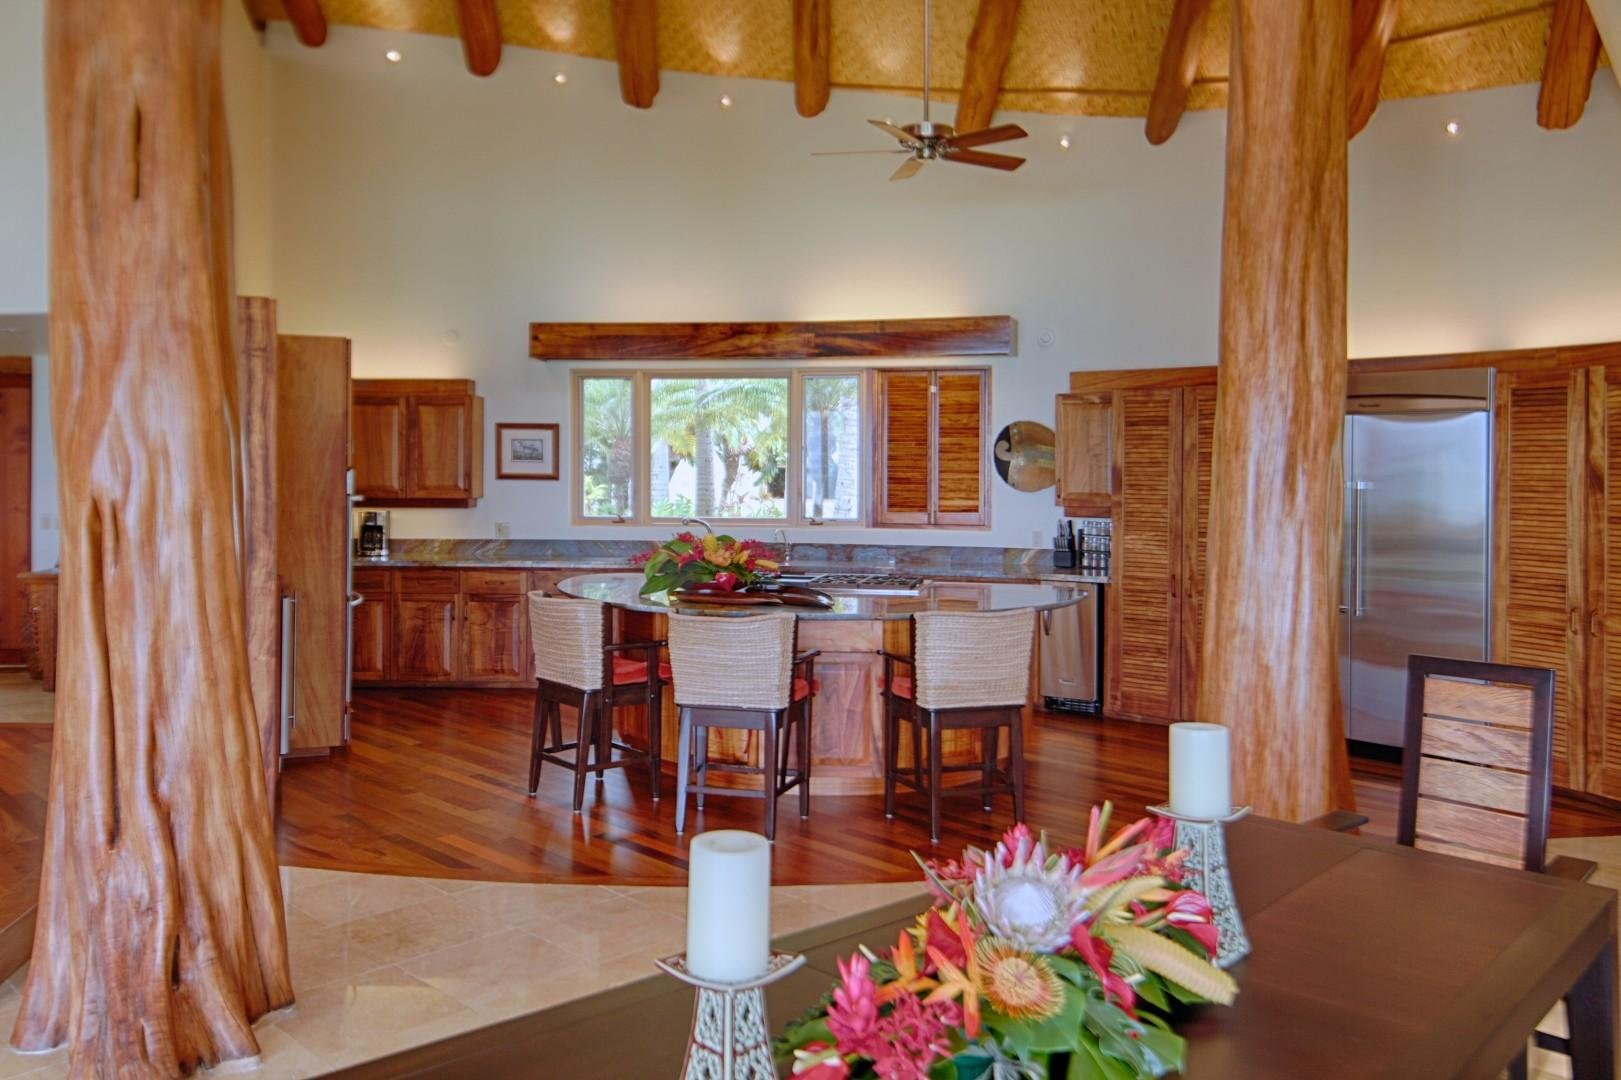 Kitchen framed by Ohia trees in Main House